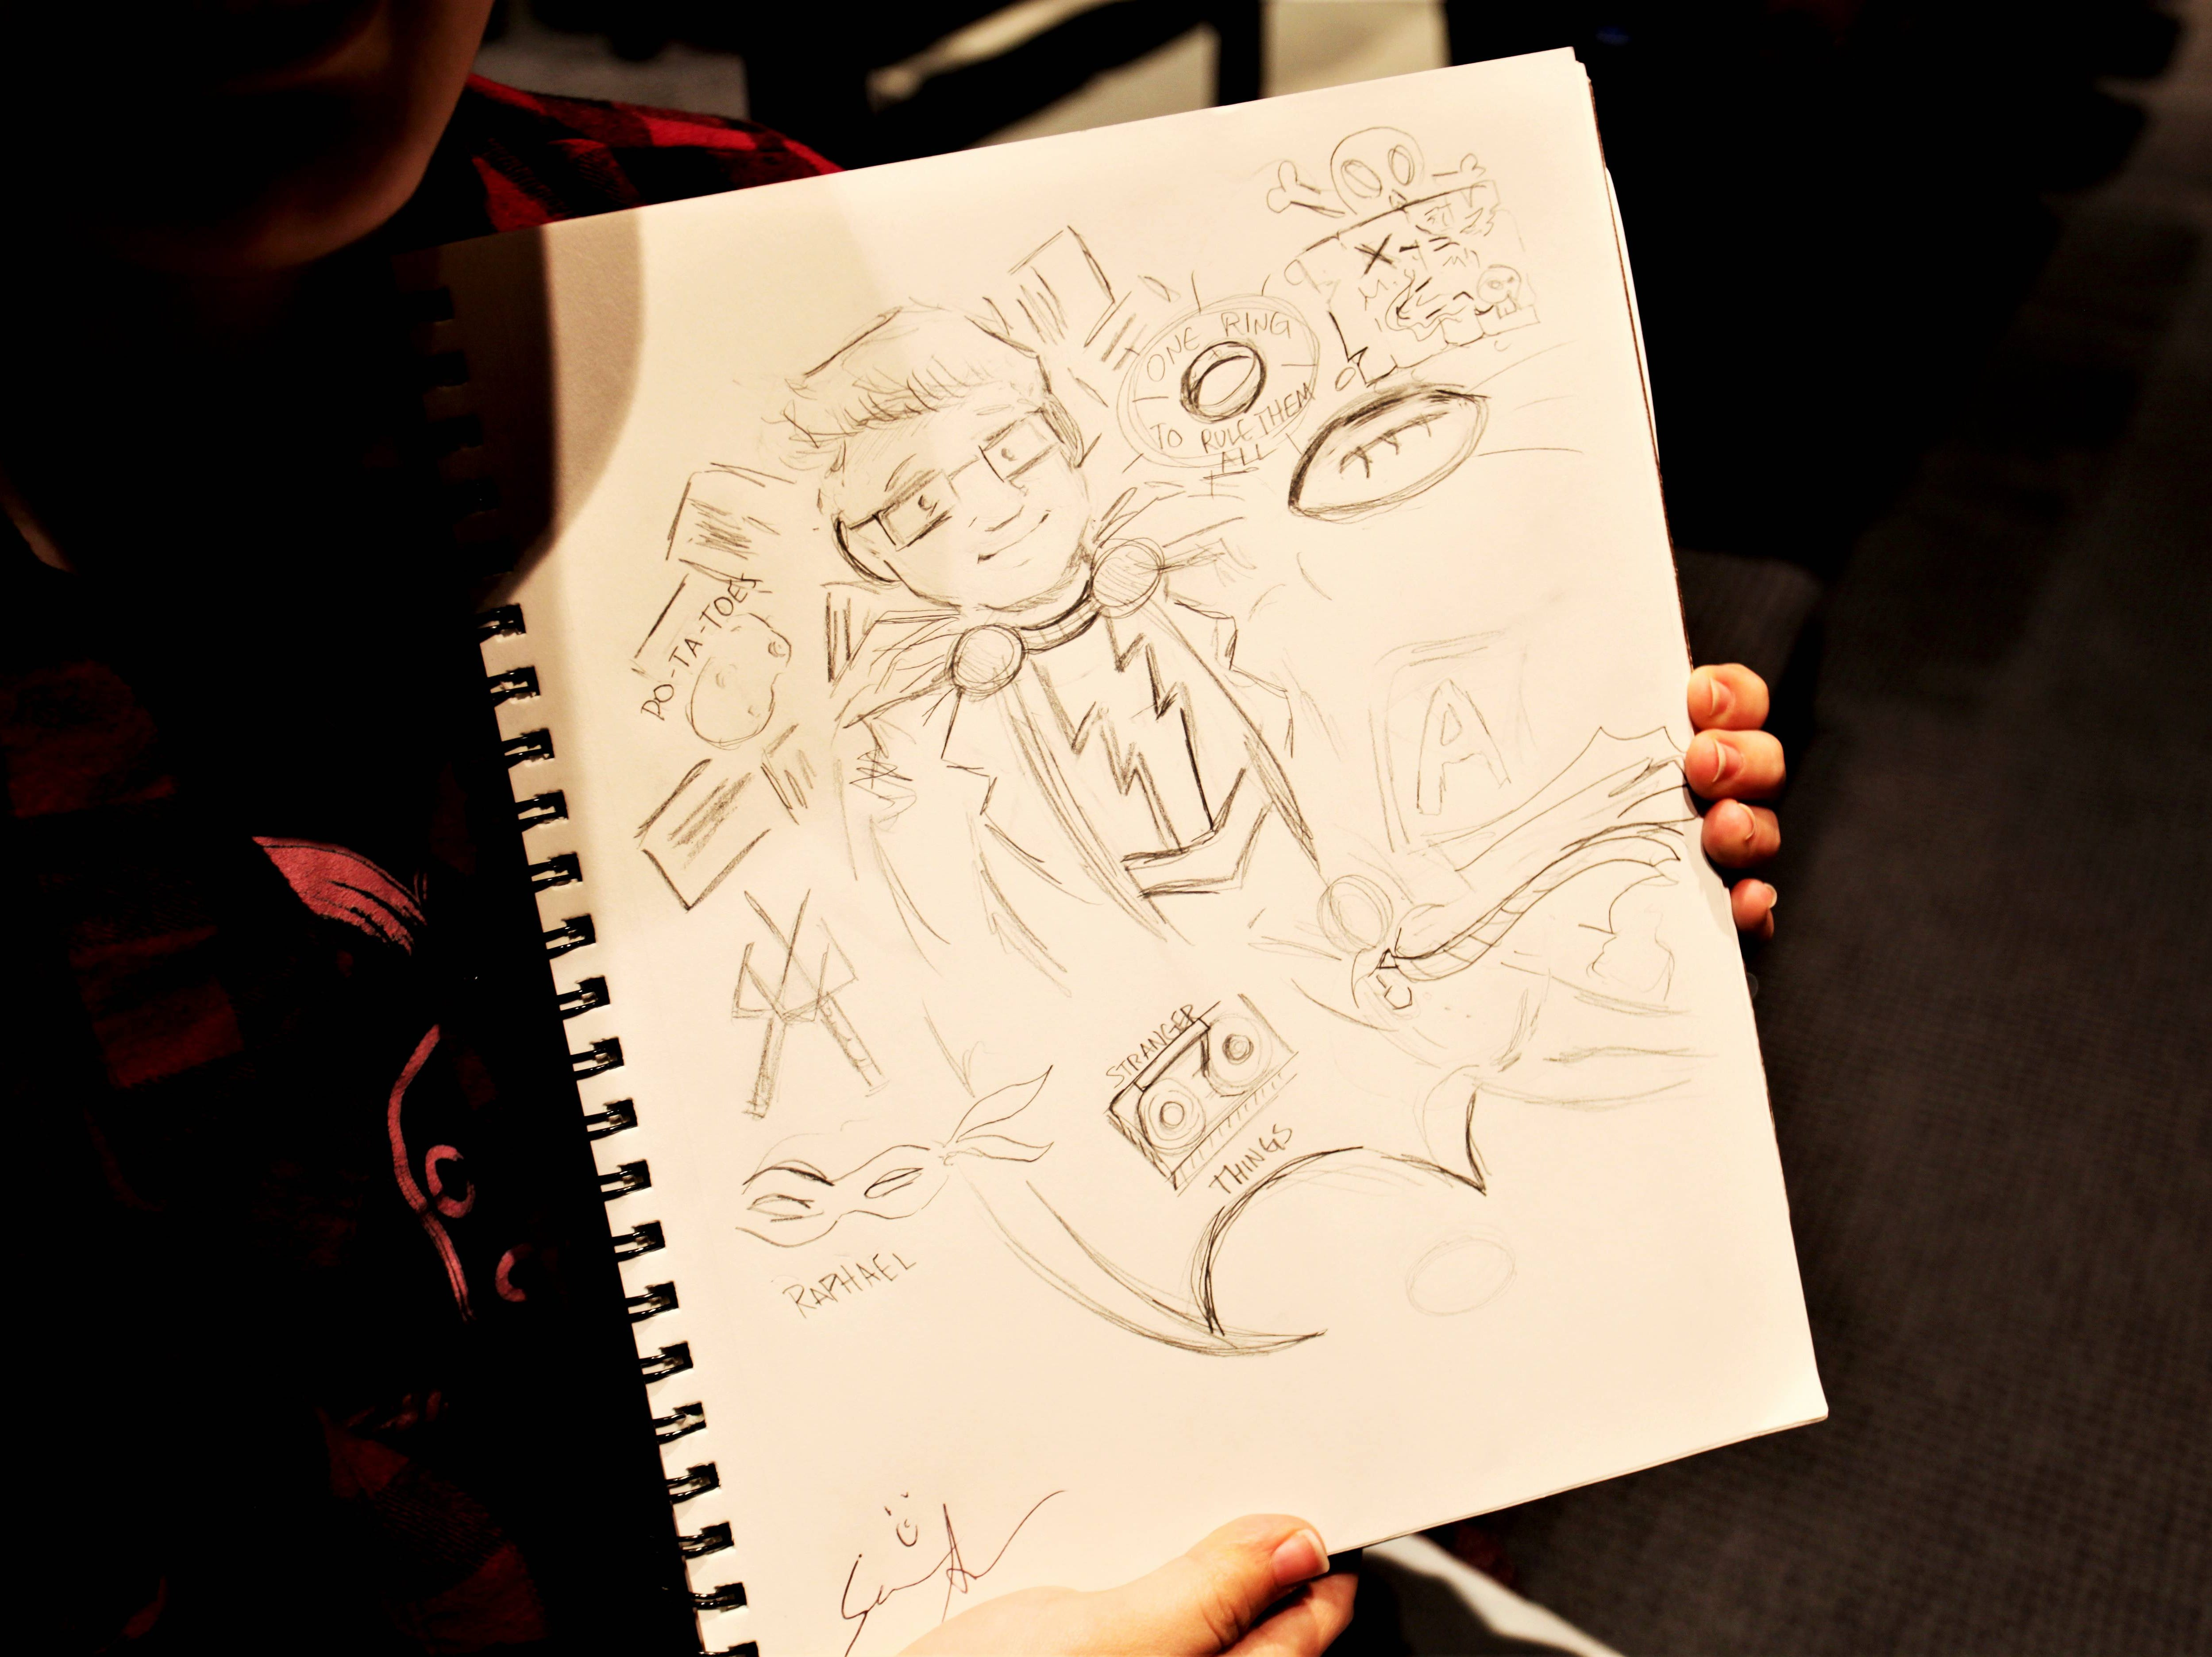 Emma McGlumphry, a Missouri State University freshman and animation major, displays a sketch she drew during a keynote speech by Sean Astin Wednesday, May 1, 2019. Astin autographed the drawing during his speech.